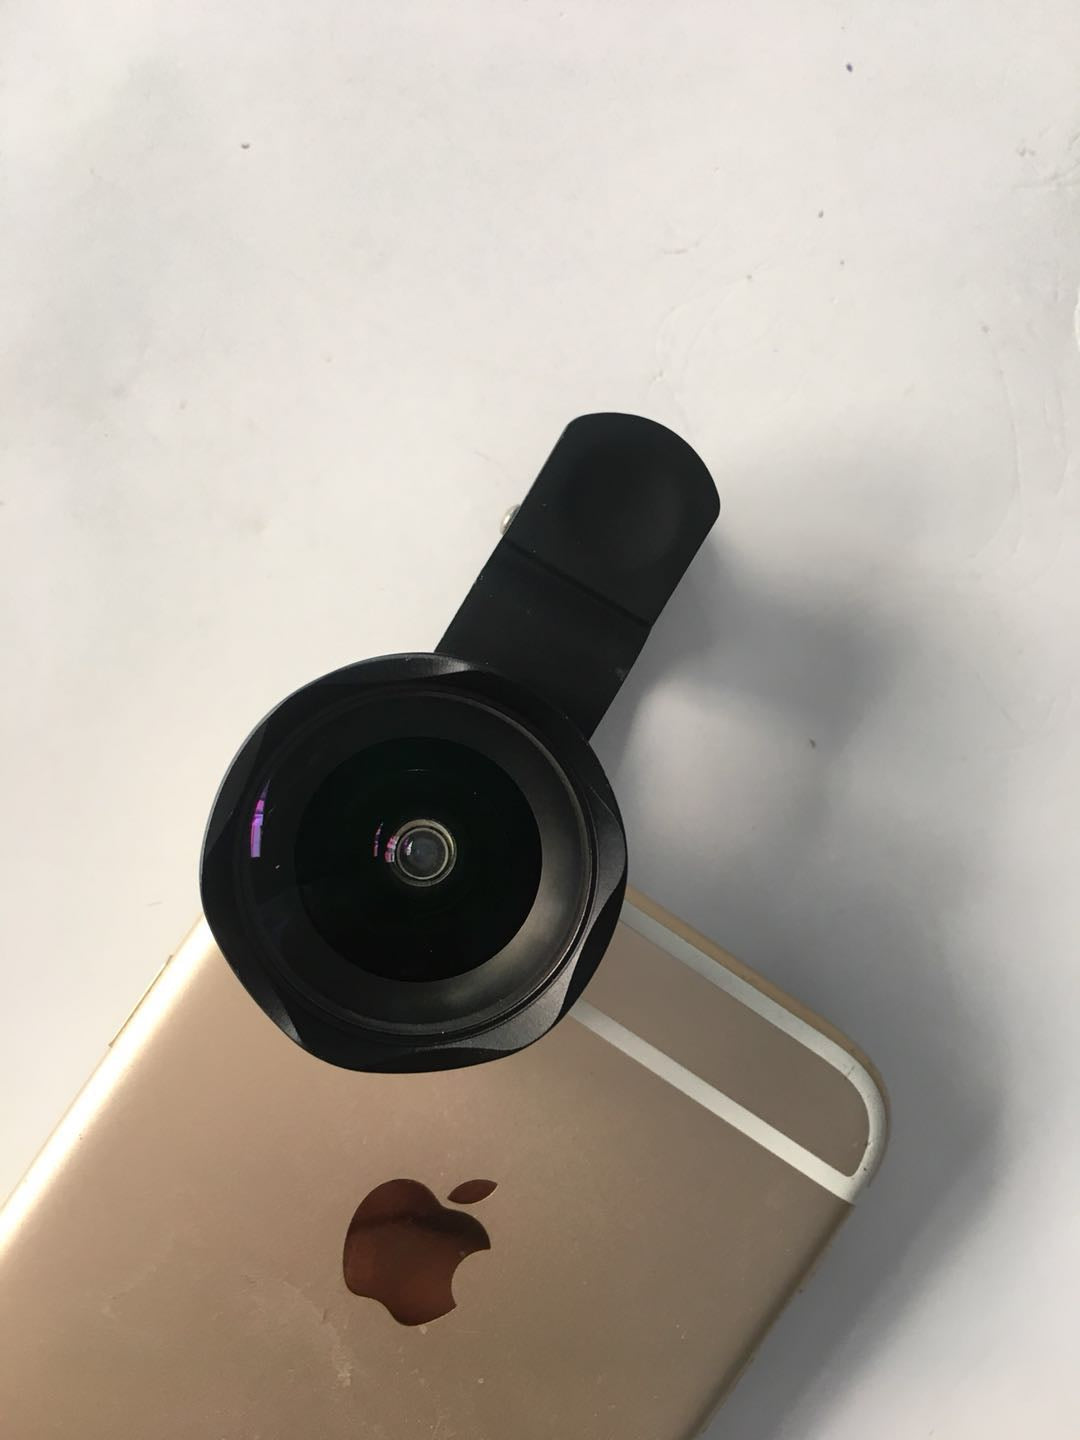 5K ultra HD moblie phone camera lens